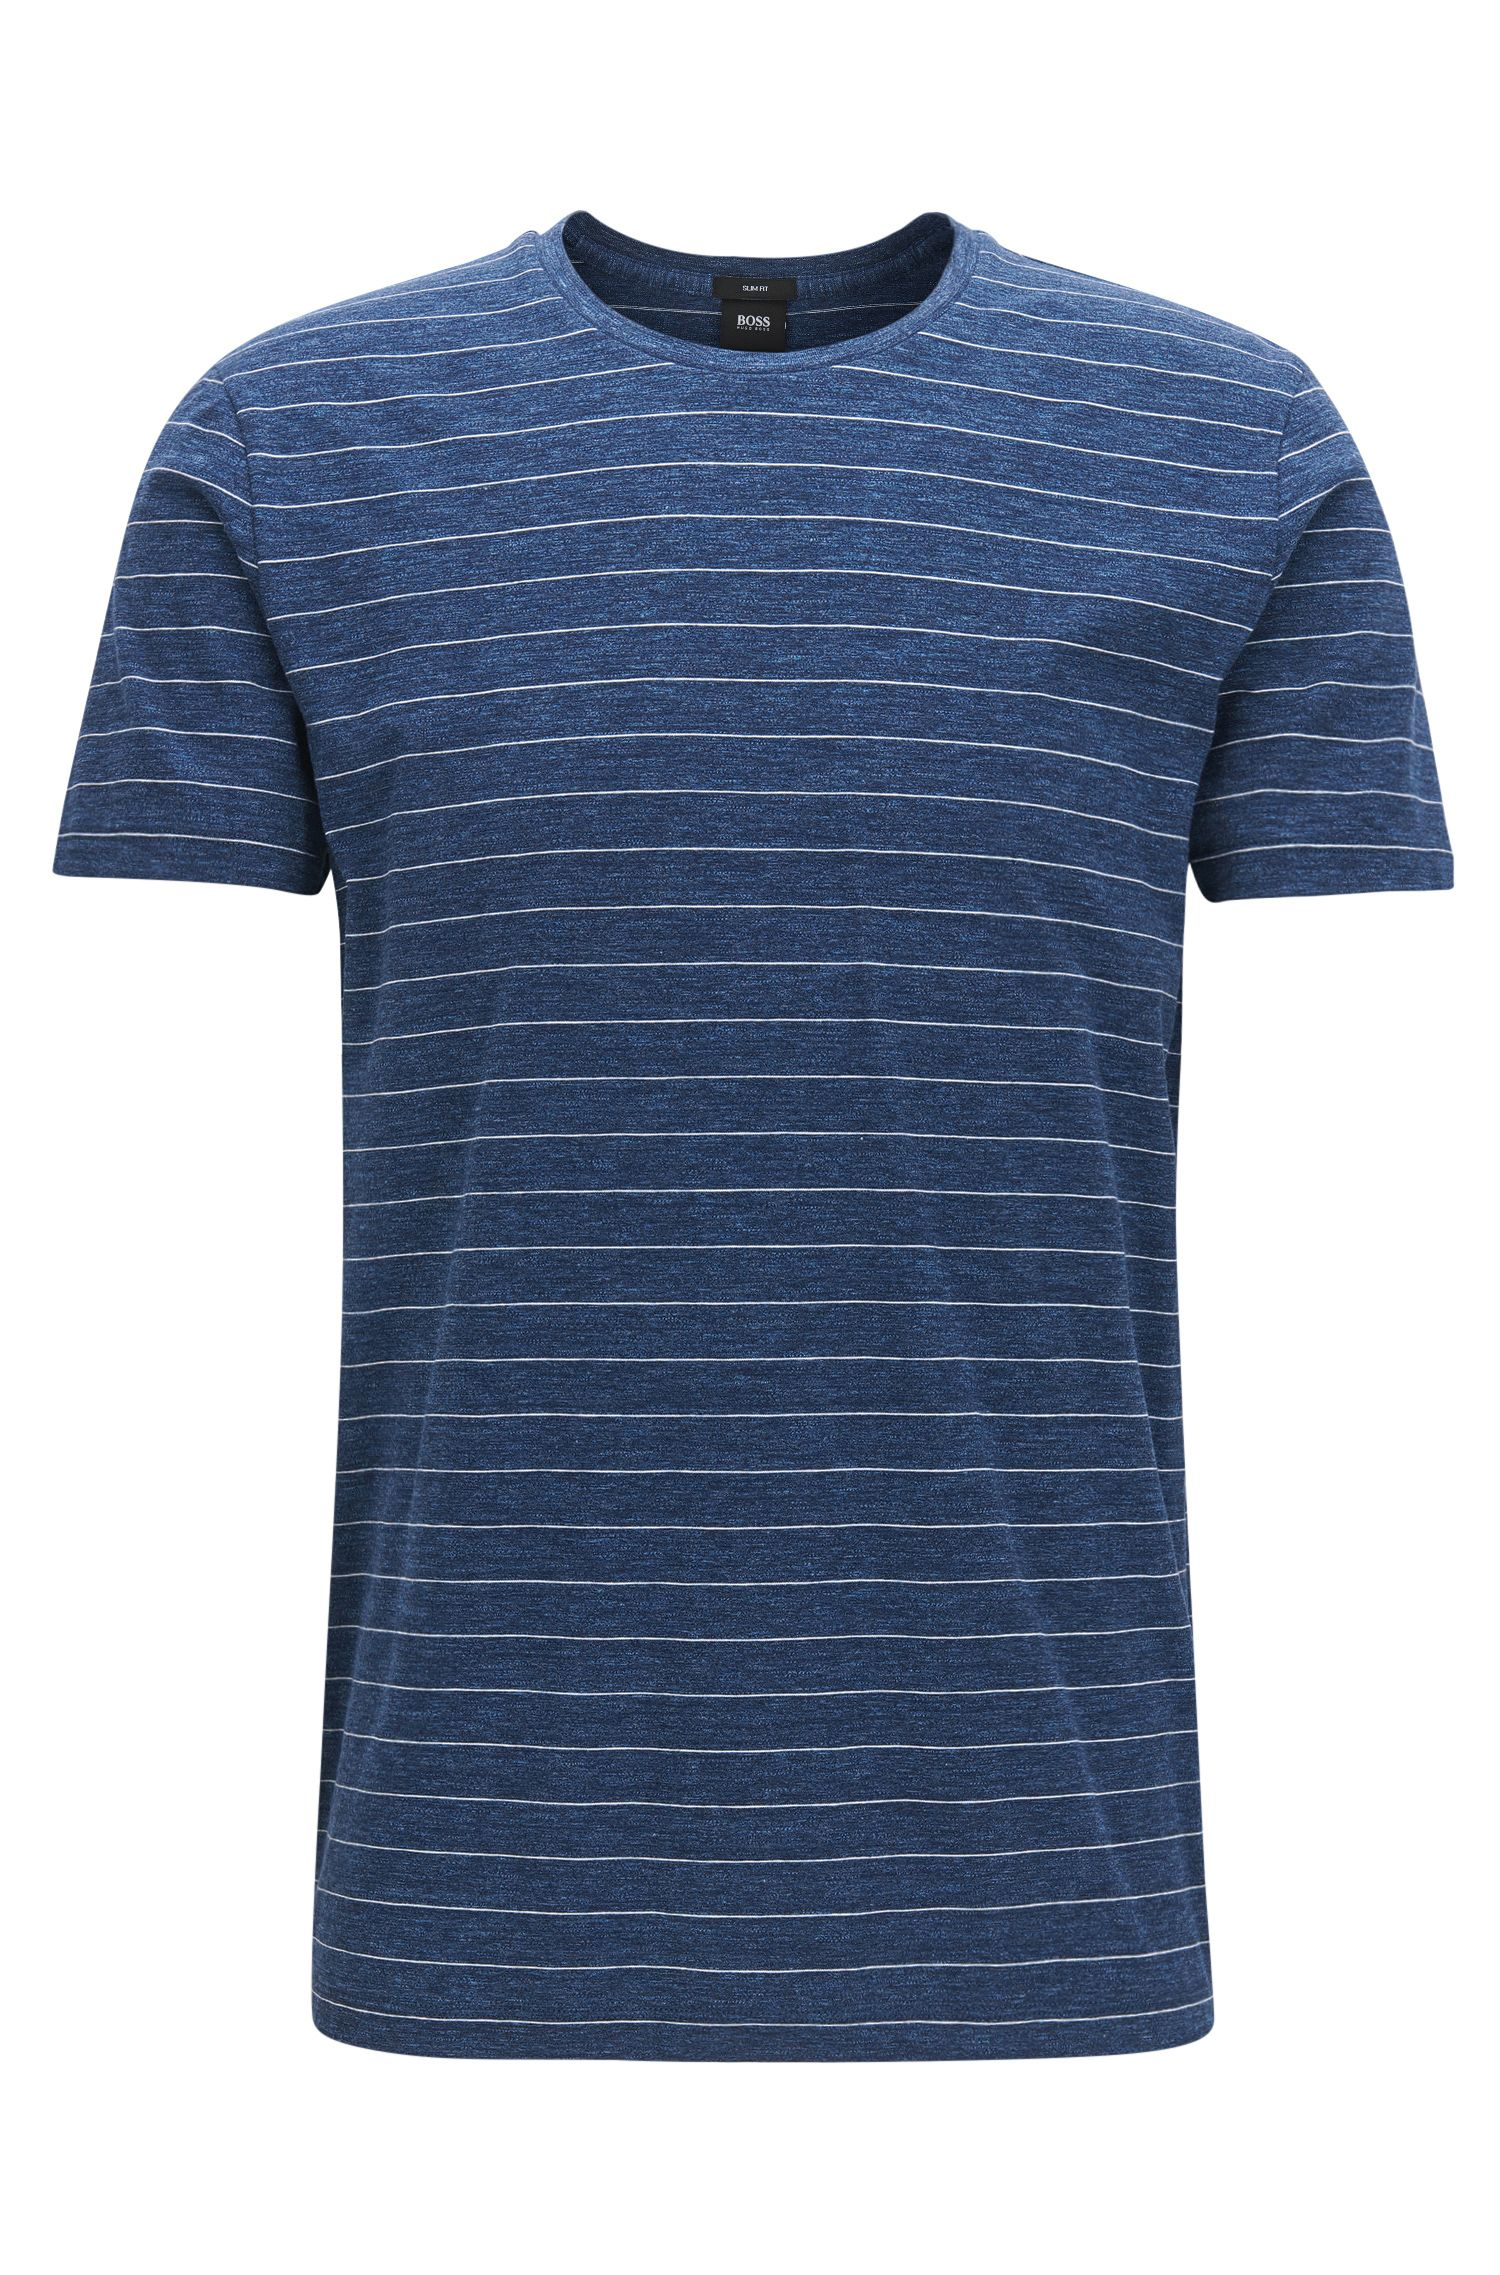 Striped slim-fit T-shirt in cotton jersey